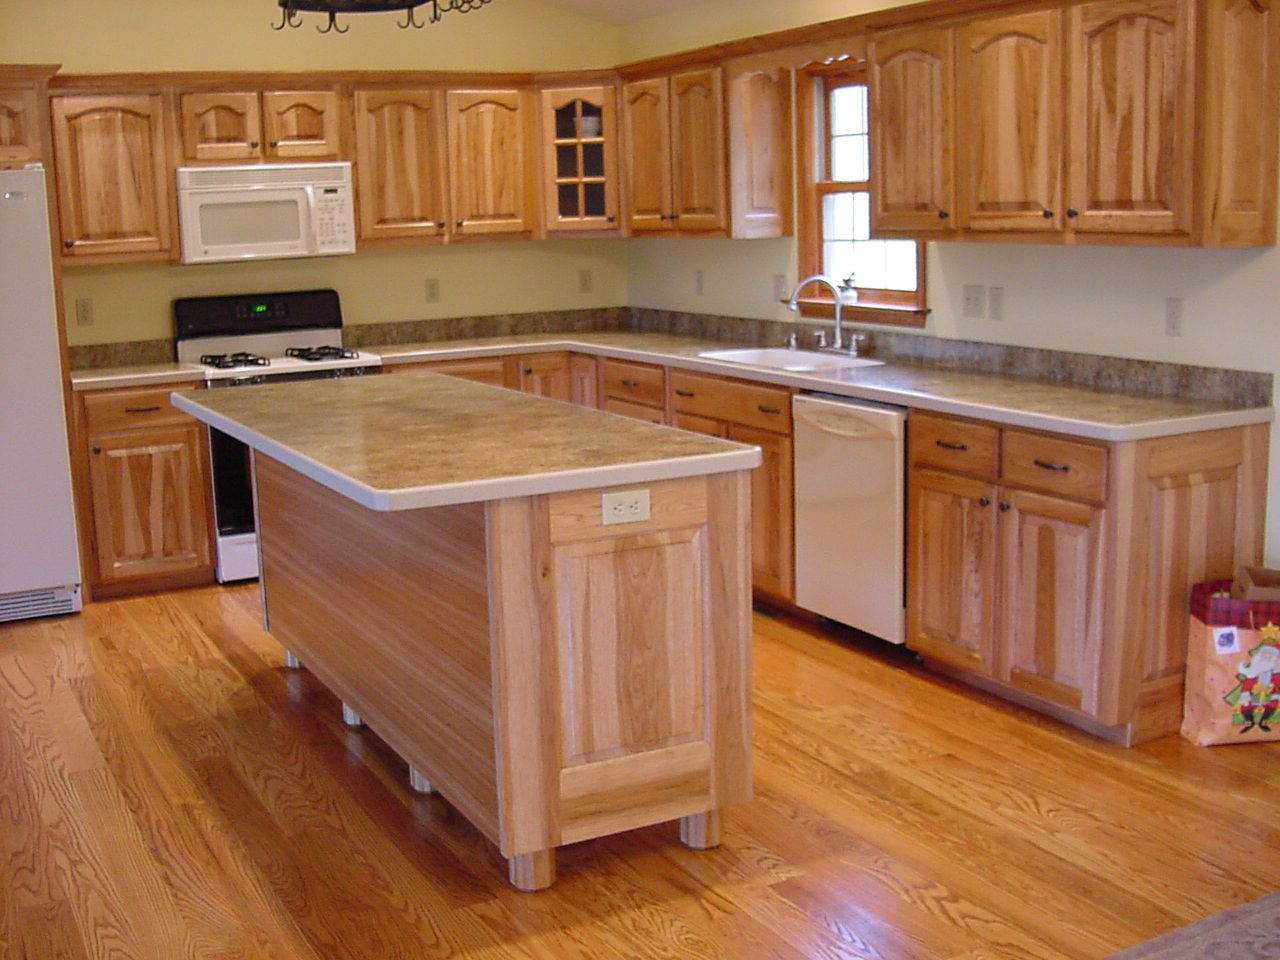 Countertops Laminate Countertops With Decorative Wood